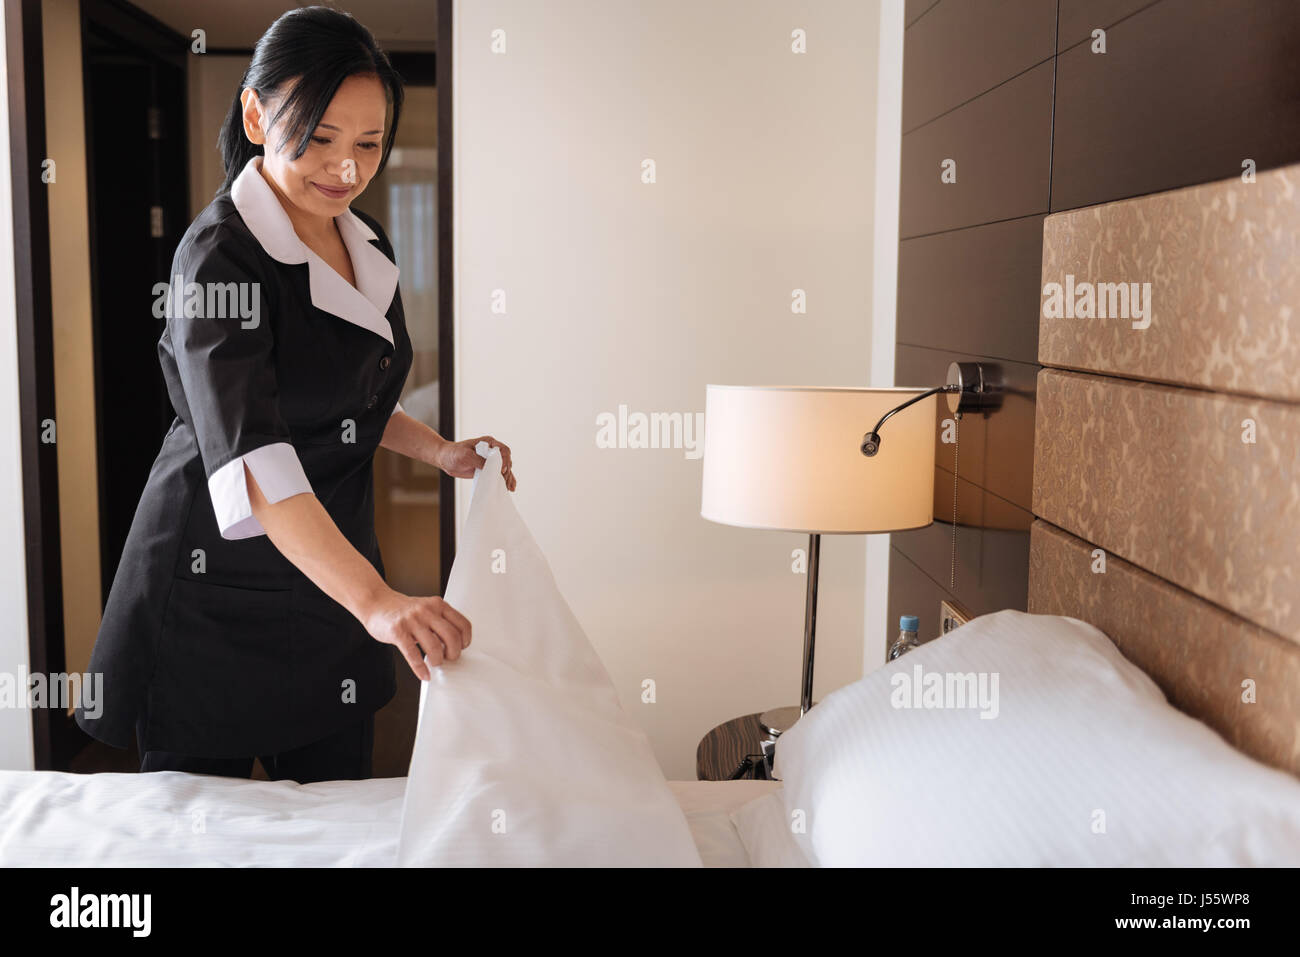 Positive nice hotel maid looking at the bed - Stock Image